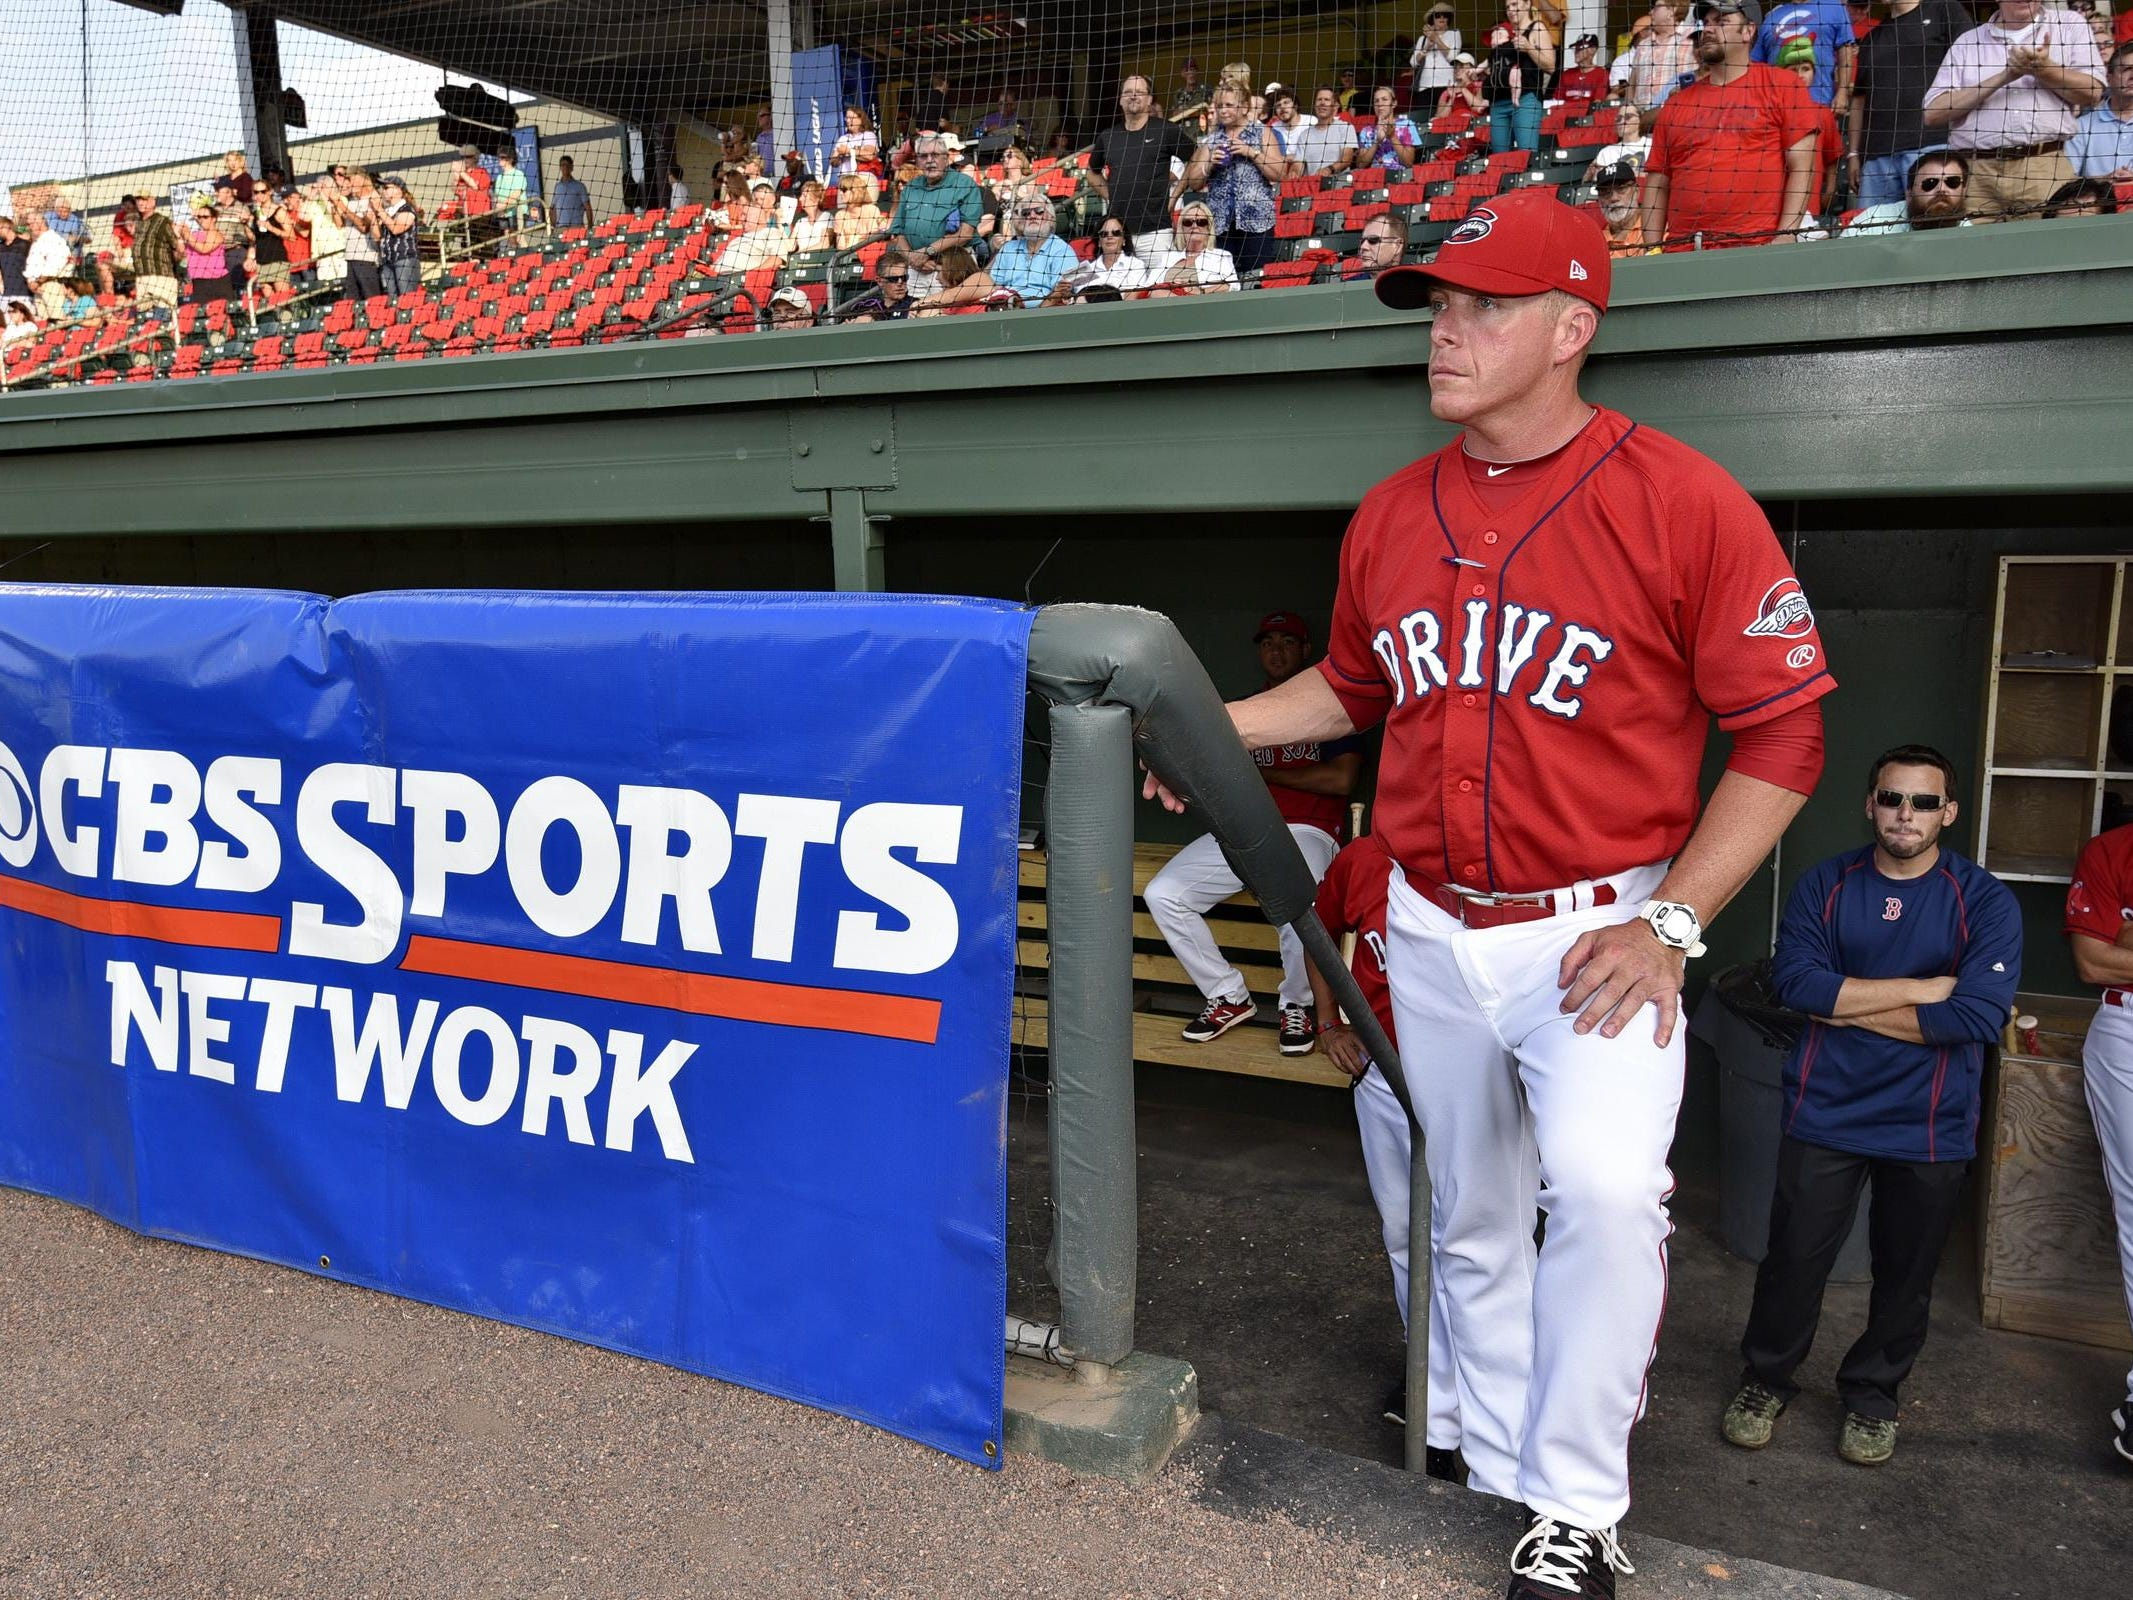 The CBS Sports Network displayed its banner in front of the Greenville Drive dugout as manager Darren Fenster waits for the game to begin Thursday.